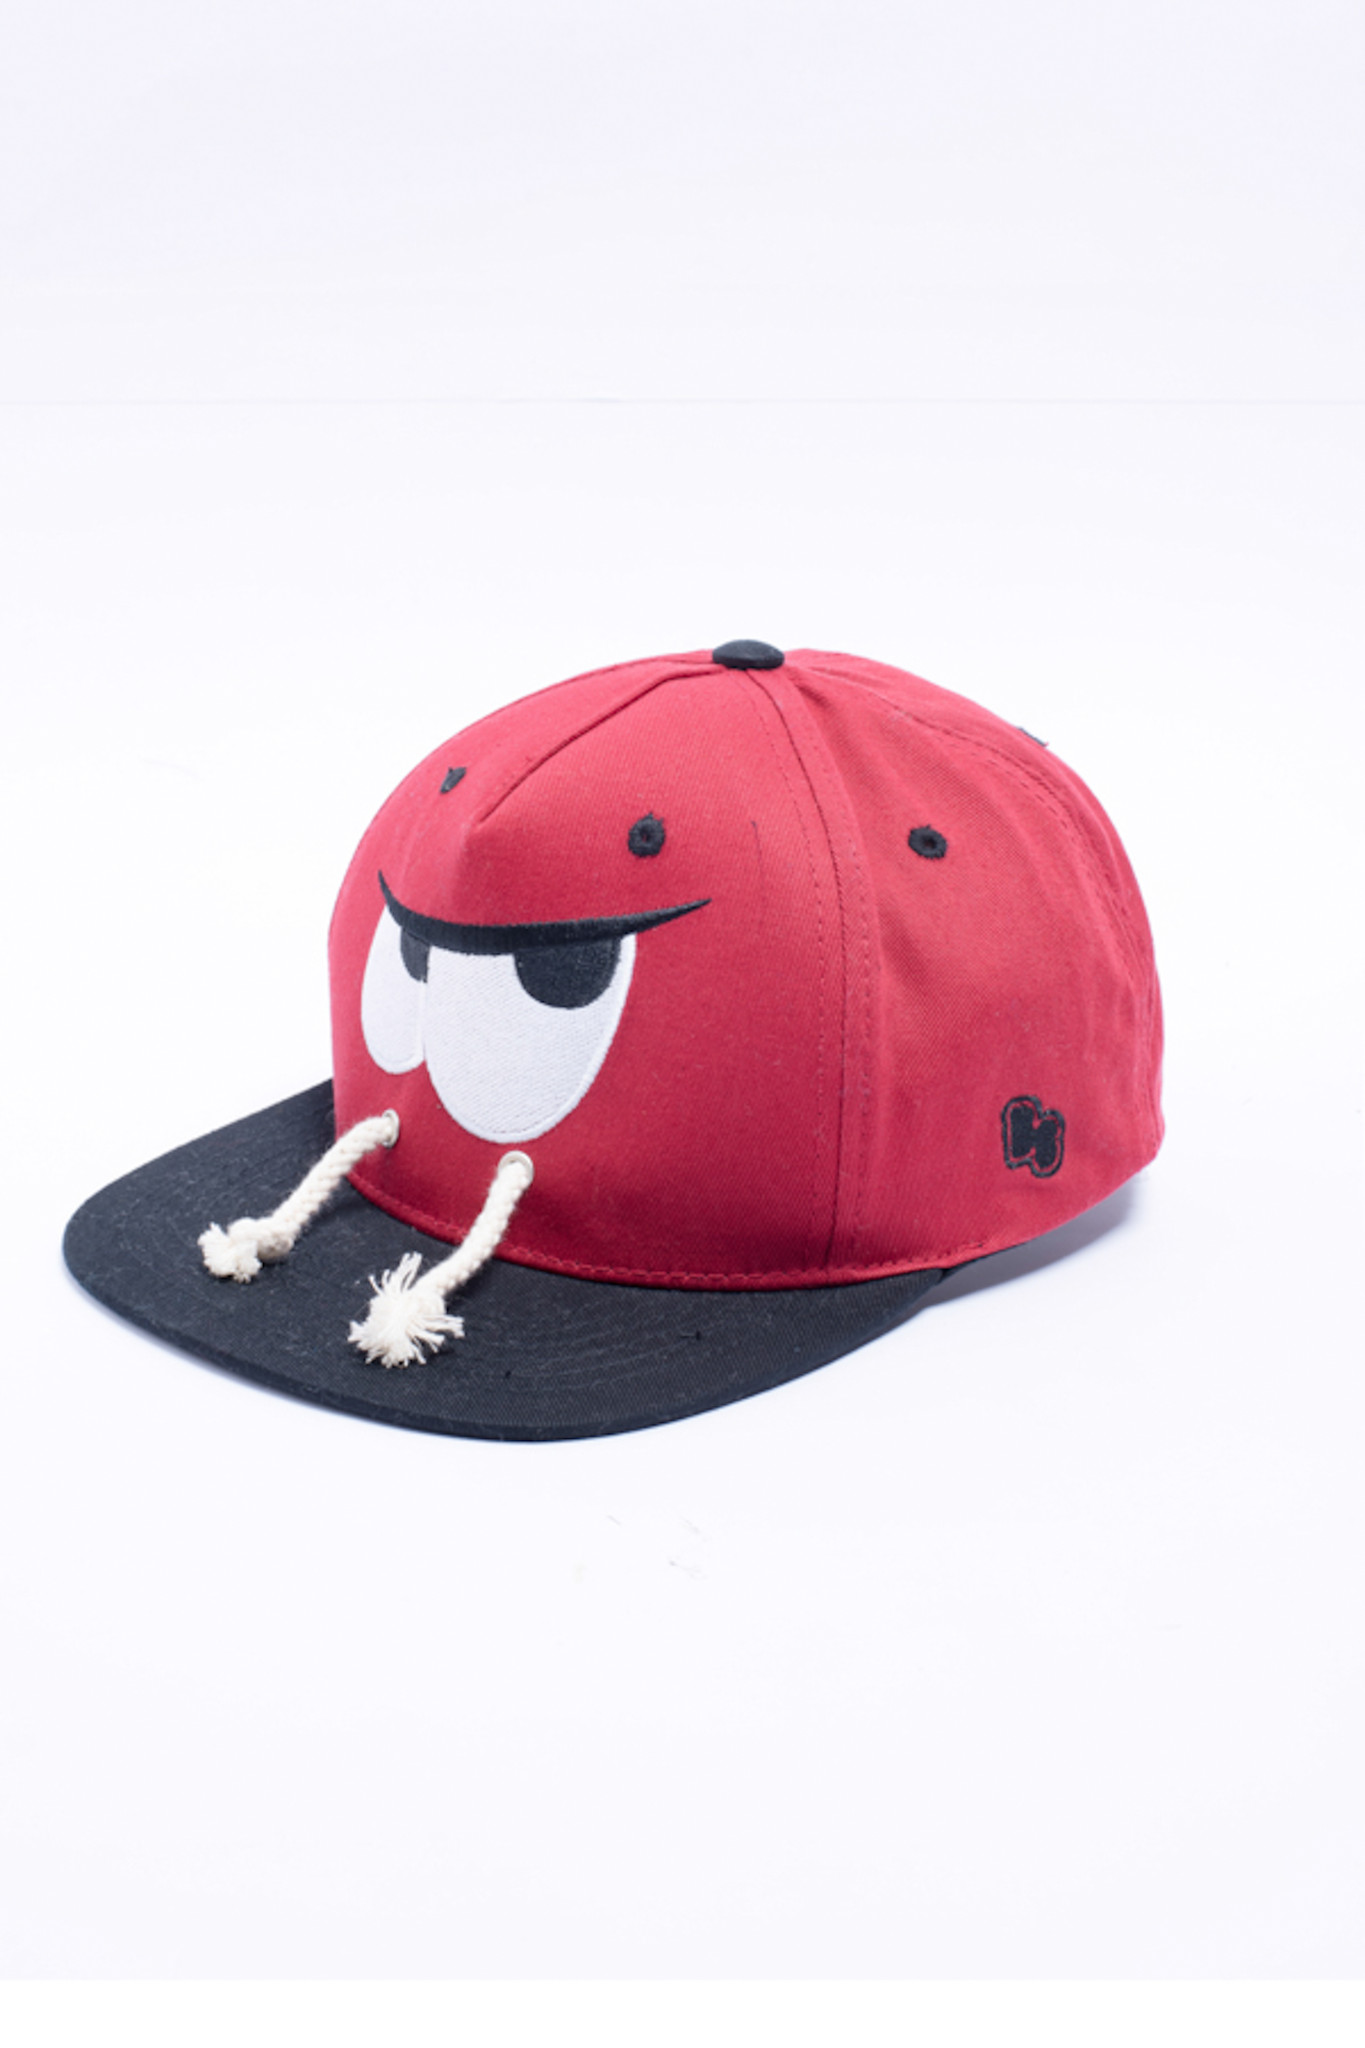 MŨ SNAPBACK THÊU PATCH GRAPHIC RED. LARVA. GRAPHIC